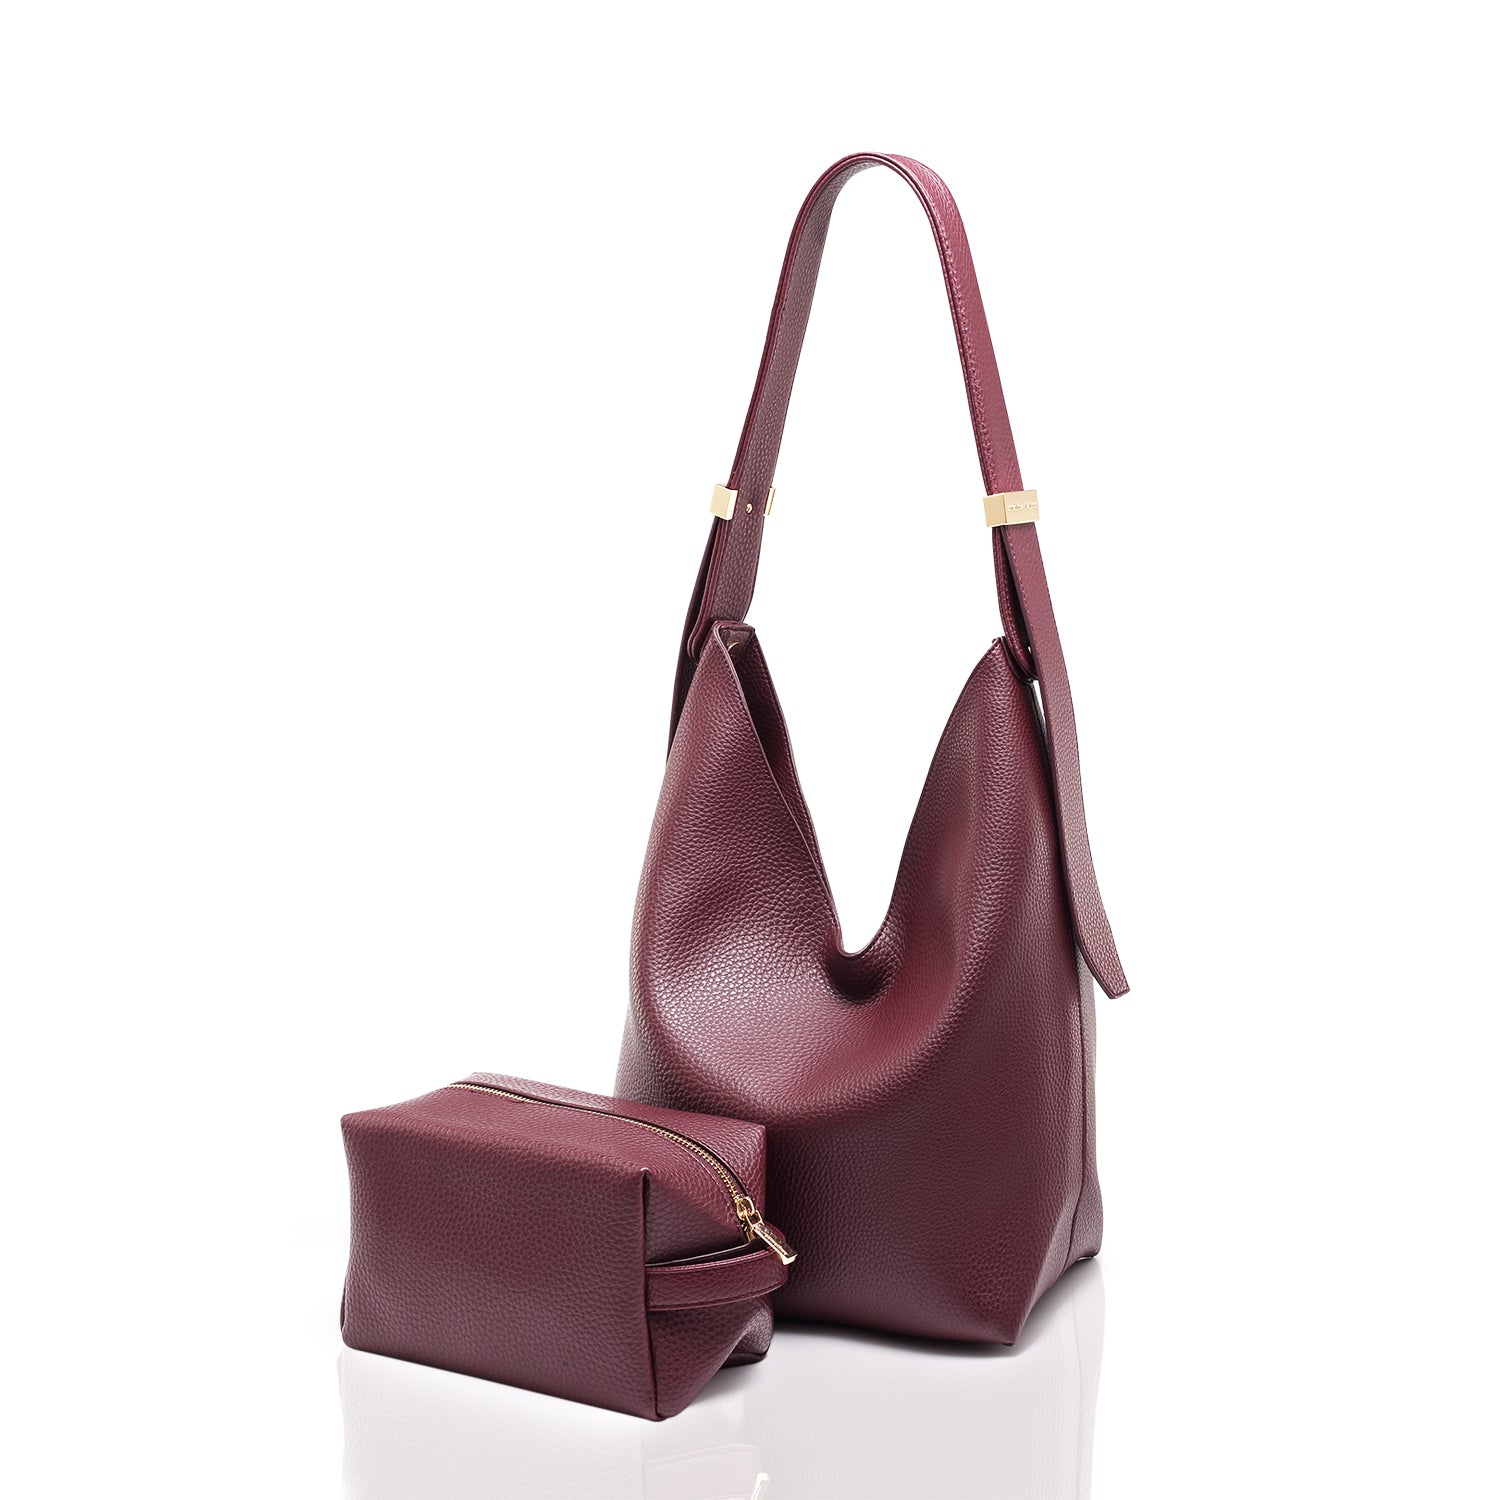 RIBAG HOBO MINI - MAROON